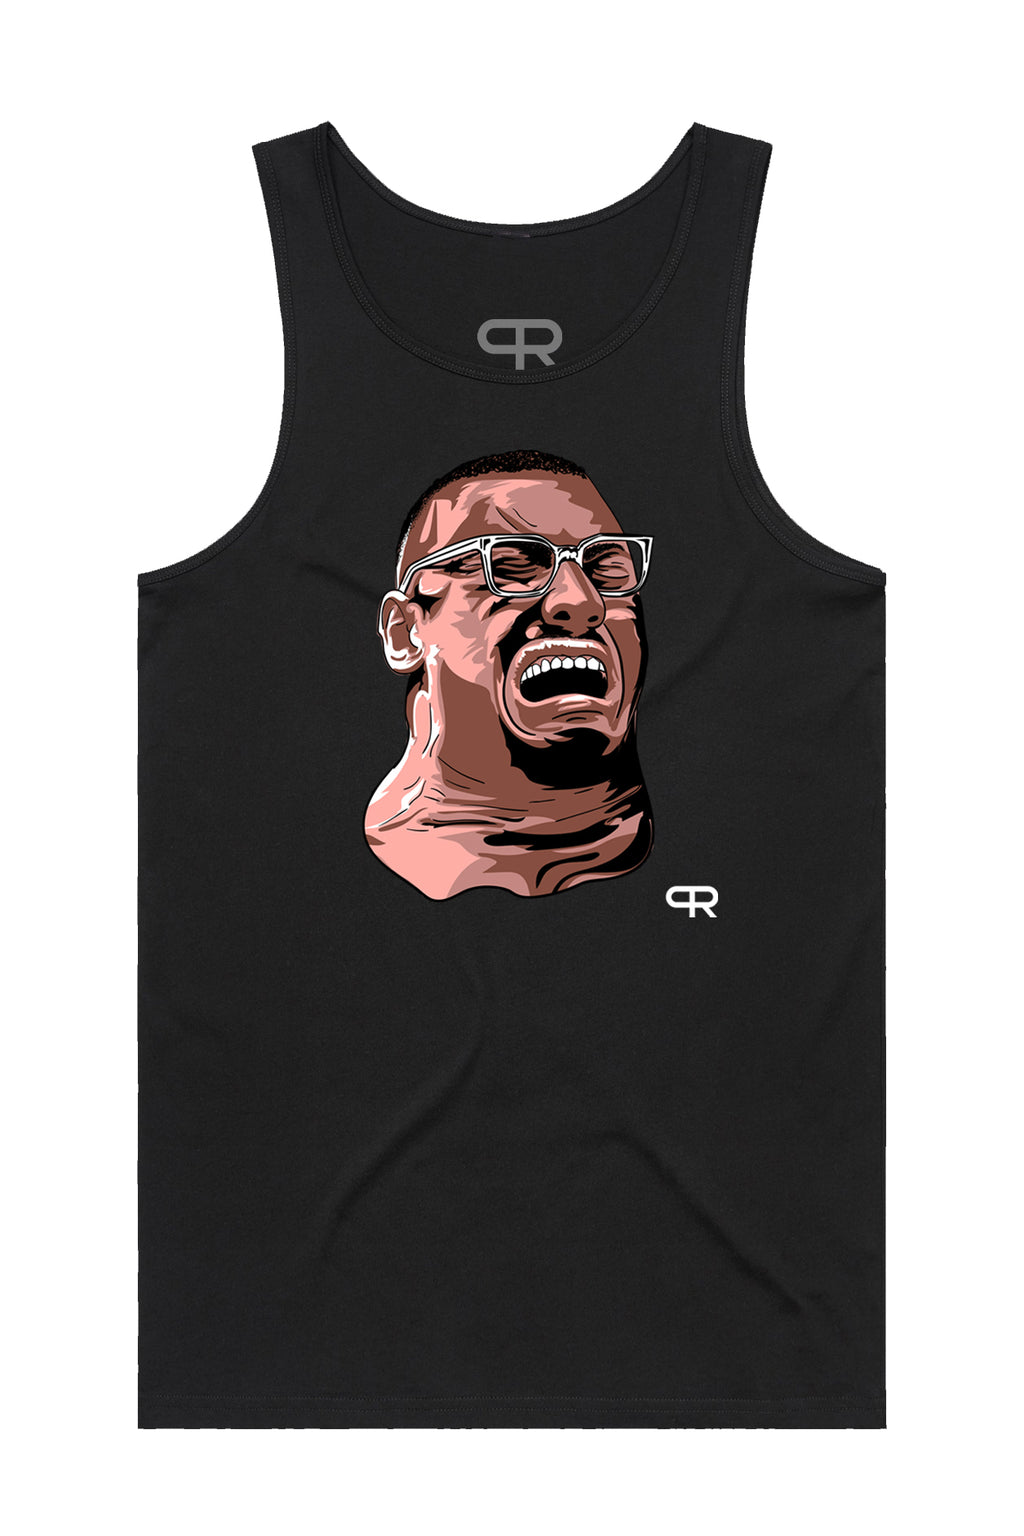 PR Faces of Larry Tank Top- Black